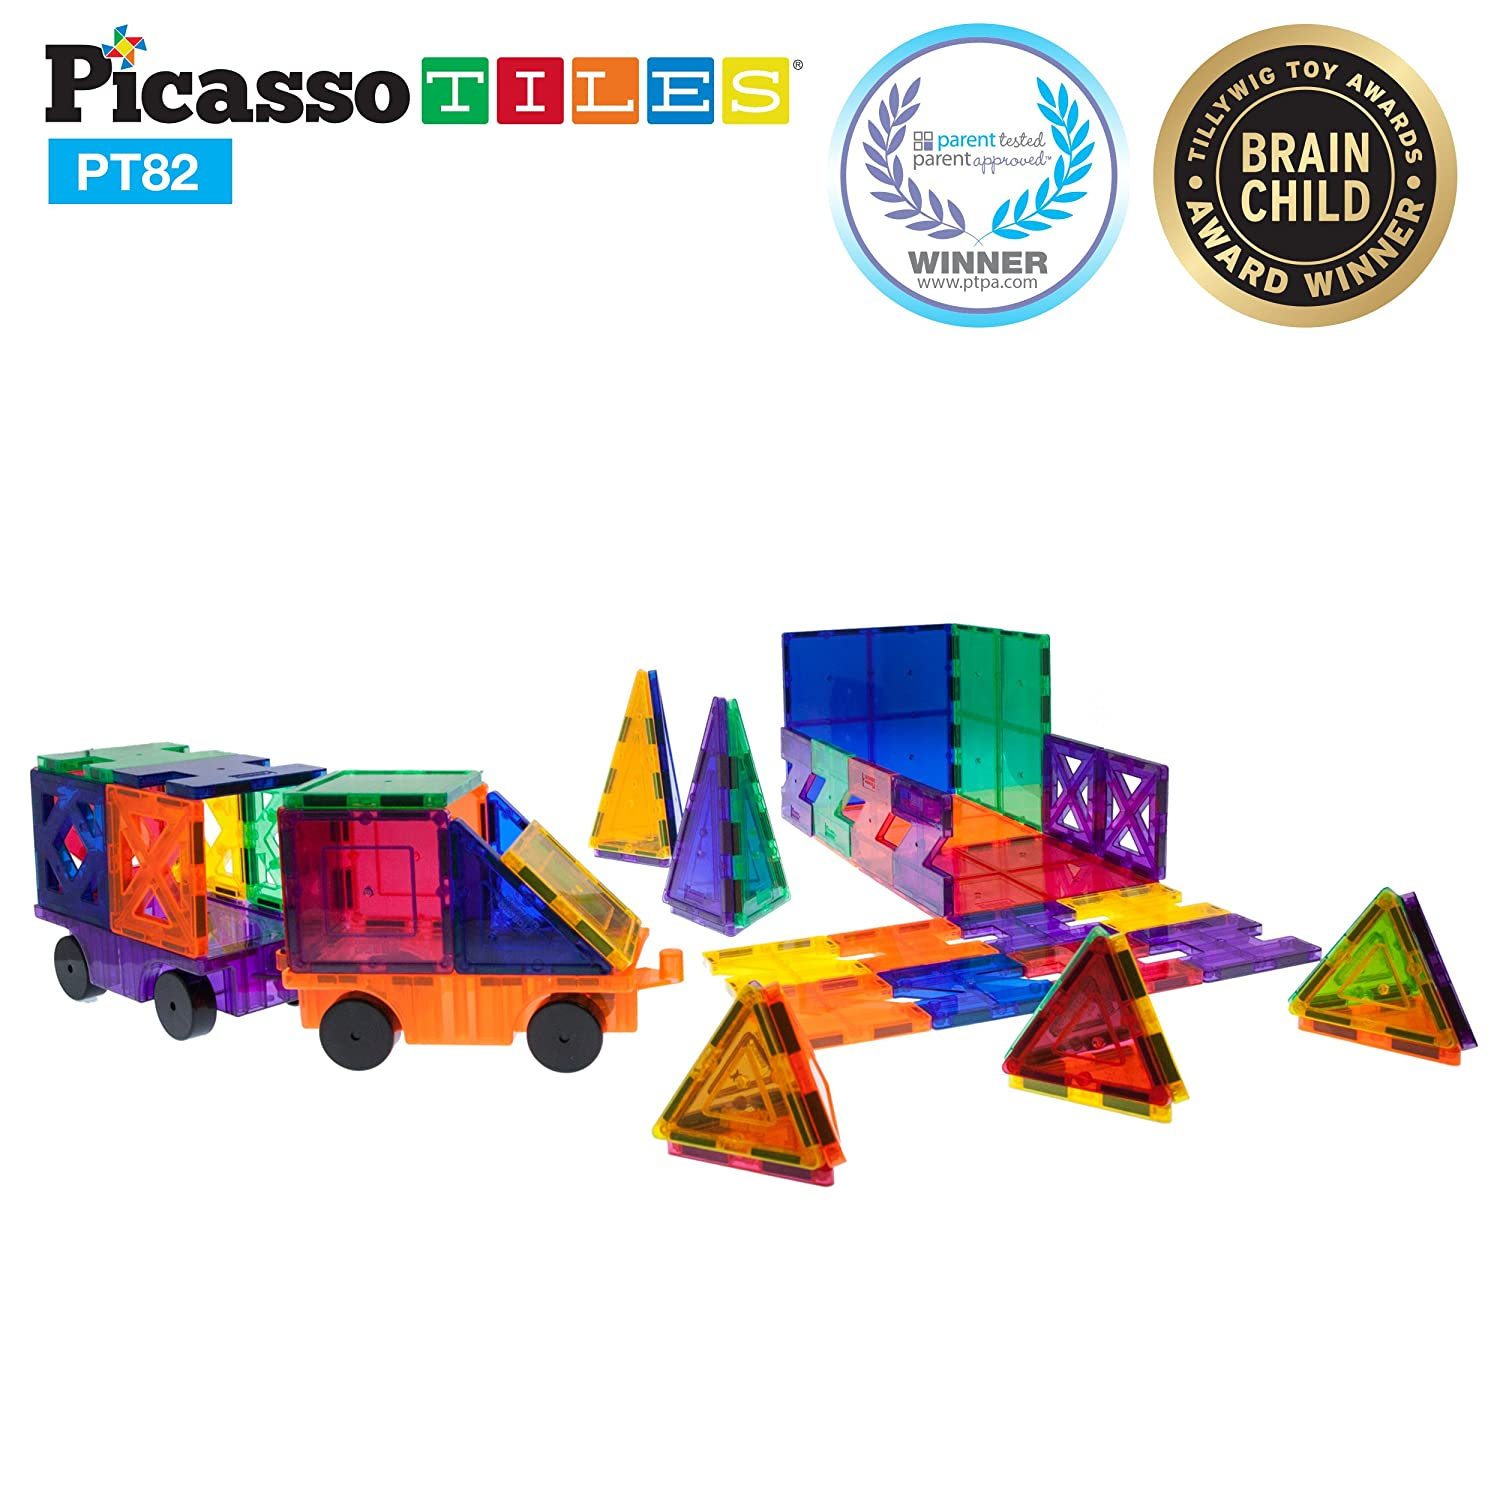 PicassoTiles 82 Piece Building Blocks 82pcs Creativity Kit 3D Building Construction Toy Set Clear Magnetic Stacking Block STEM Playboard Magnet Felt Tiles Novelty Game, Creativity Beyond Imagination Review